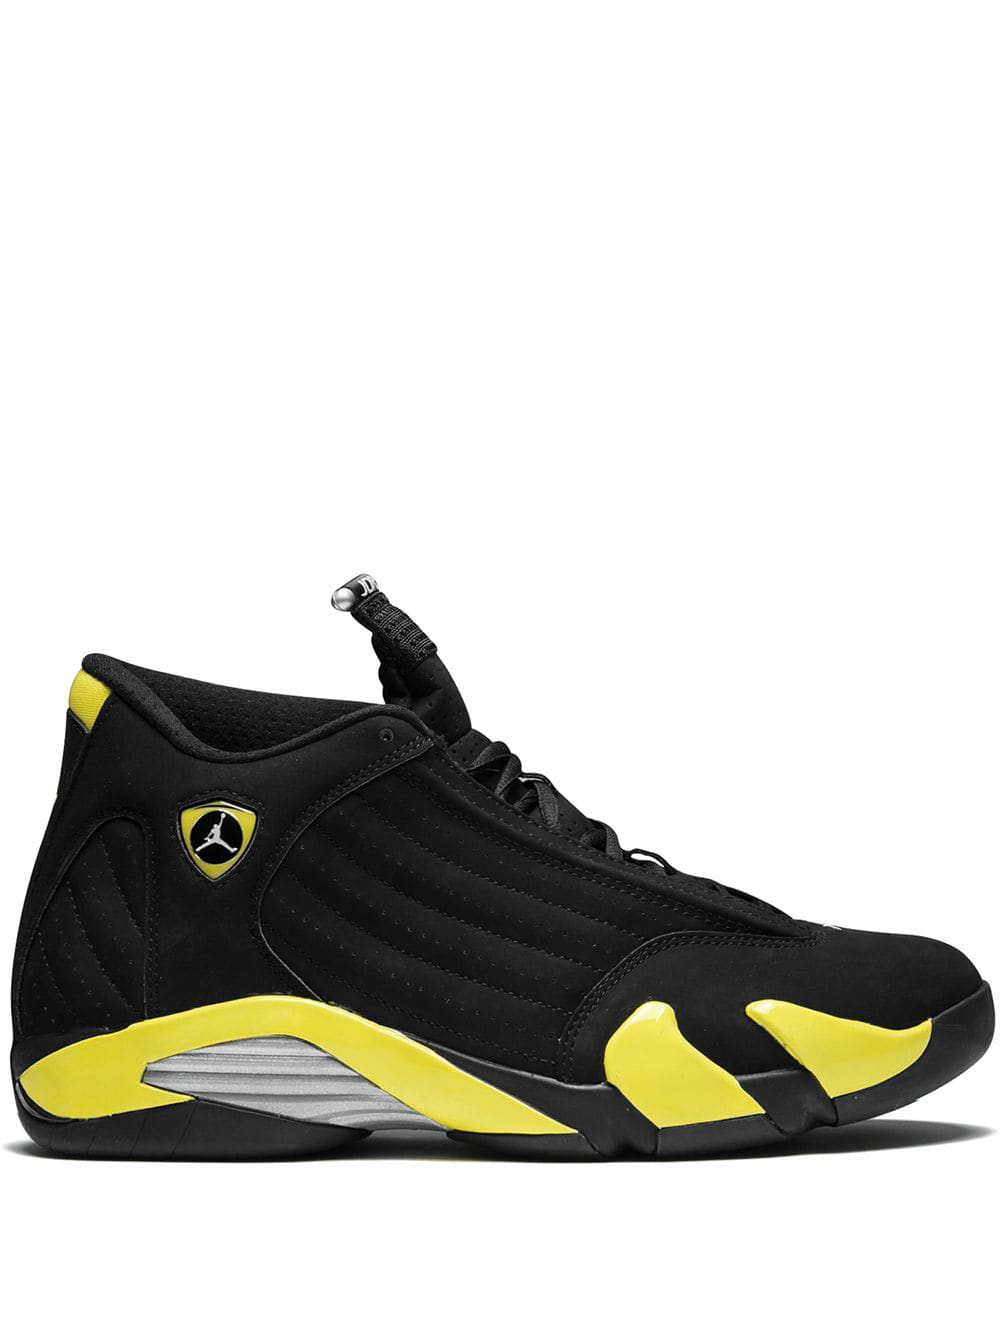 bfa02a2b669686 Jordan Air 14 Retro Sneakers - Black. Farfetch